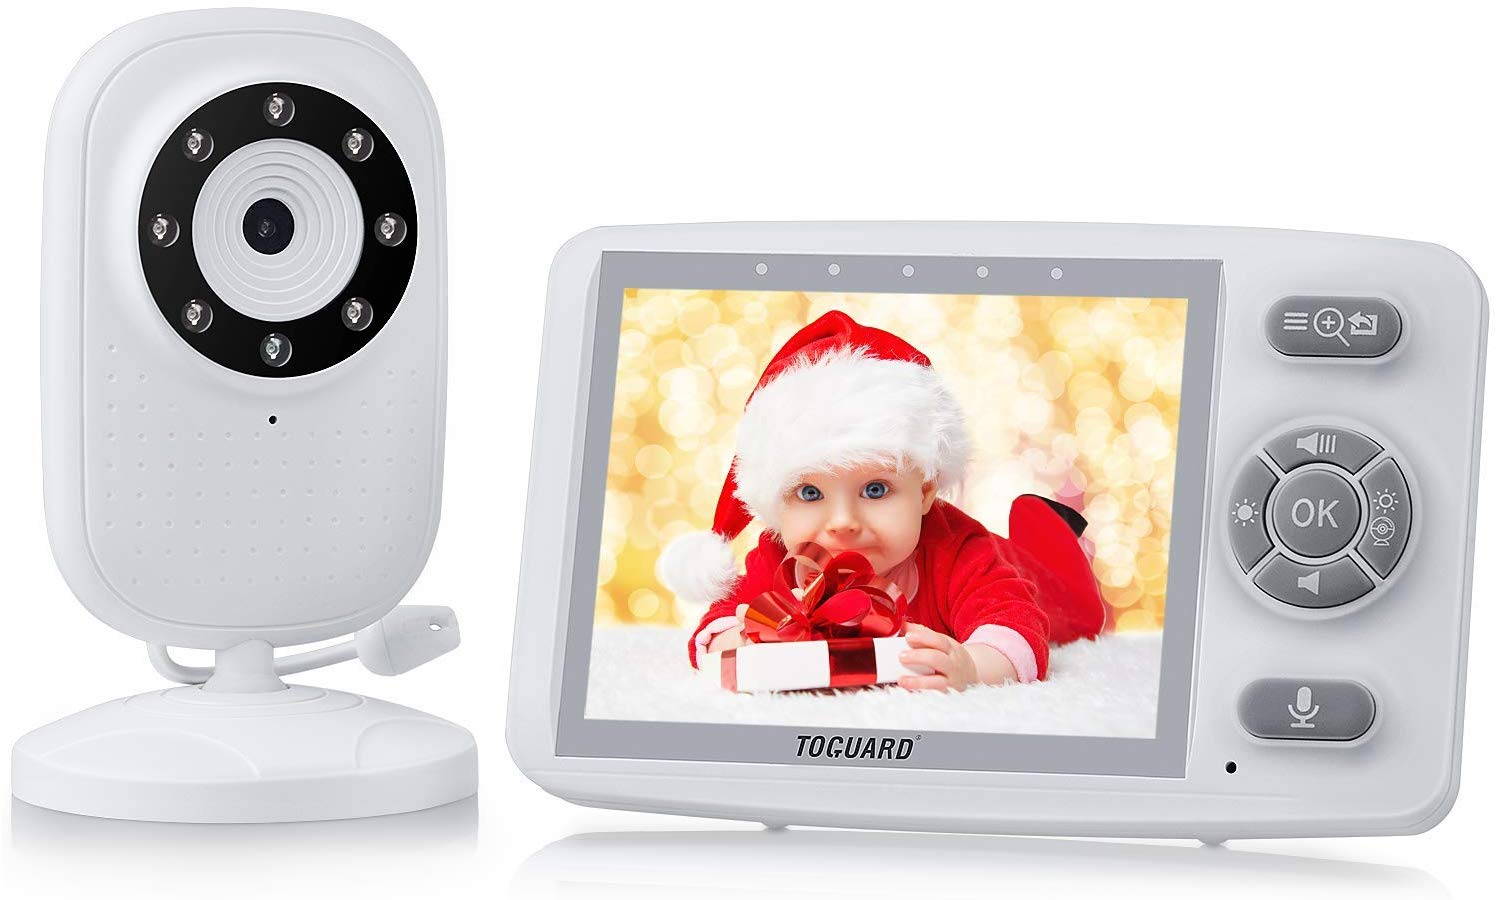 25% voucher on TOGUARD 3.5 Inch 2.4GHz Wireless Video Baby Monitor